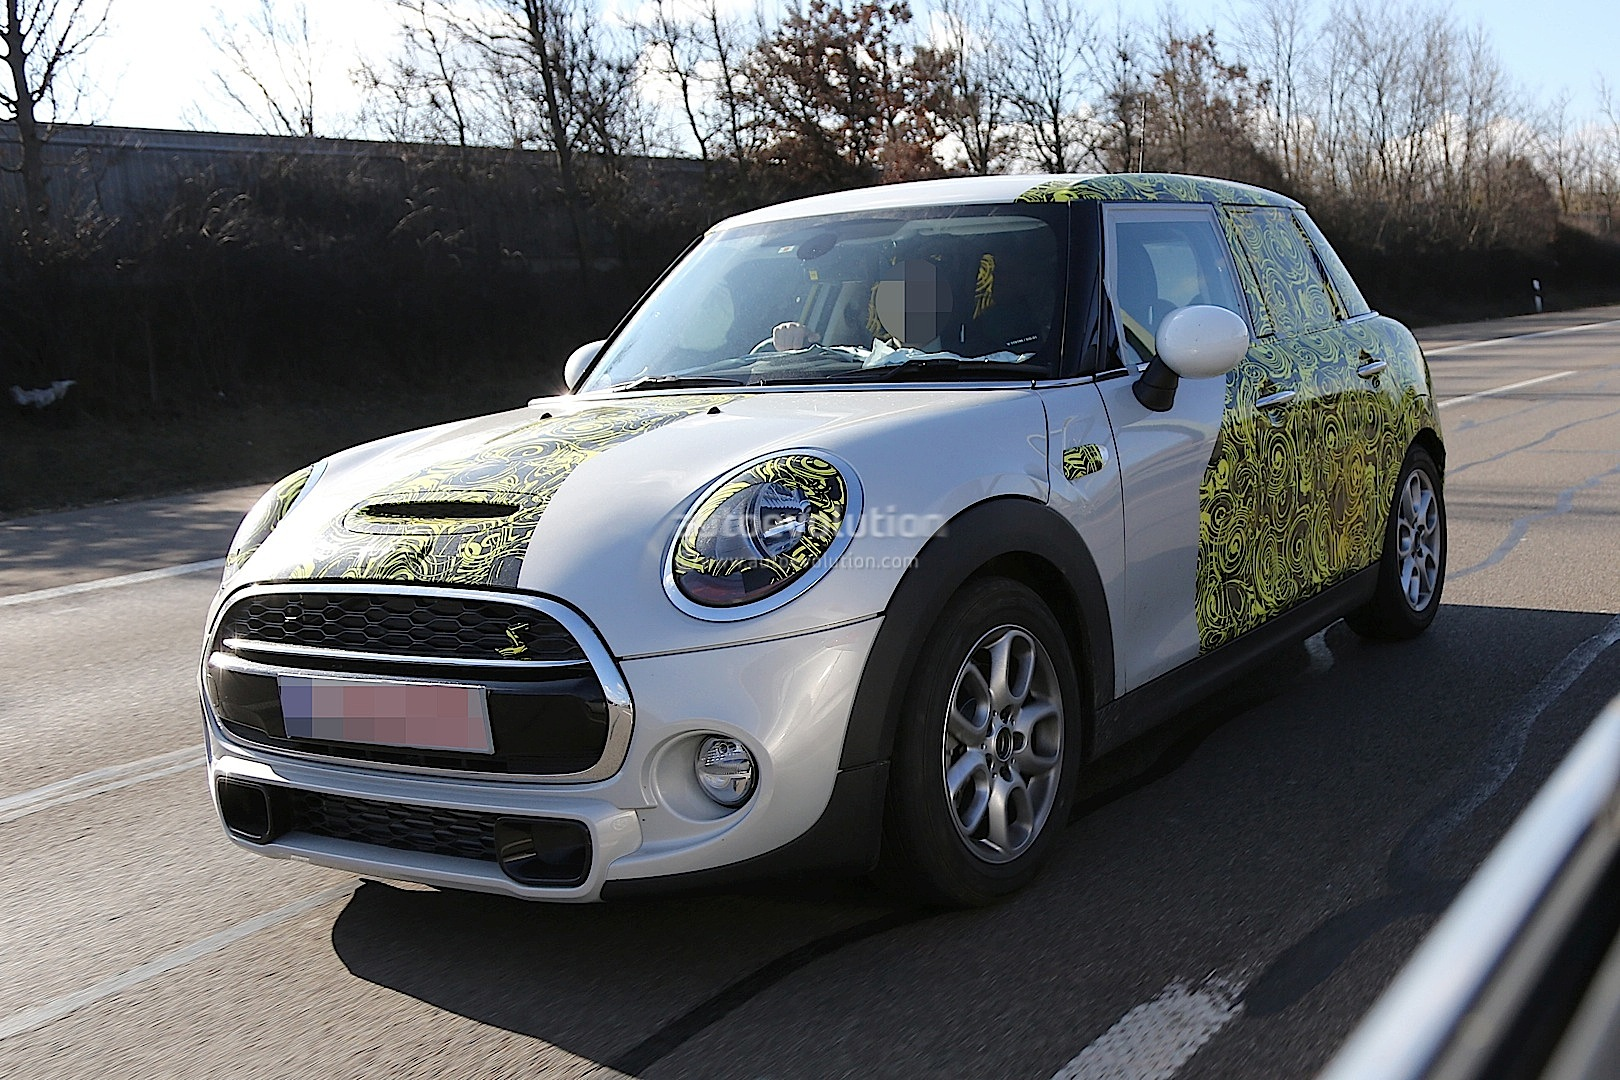 2015 MINI Cooper HD Wallpapers: British Racing Green Goes Well with ...